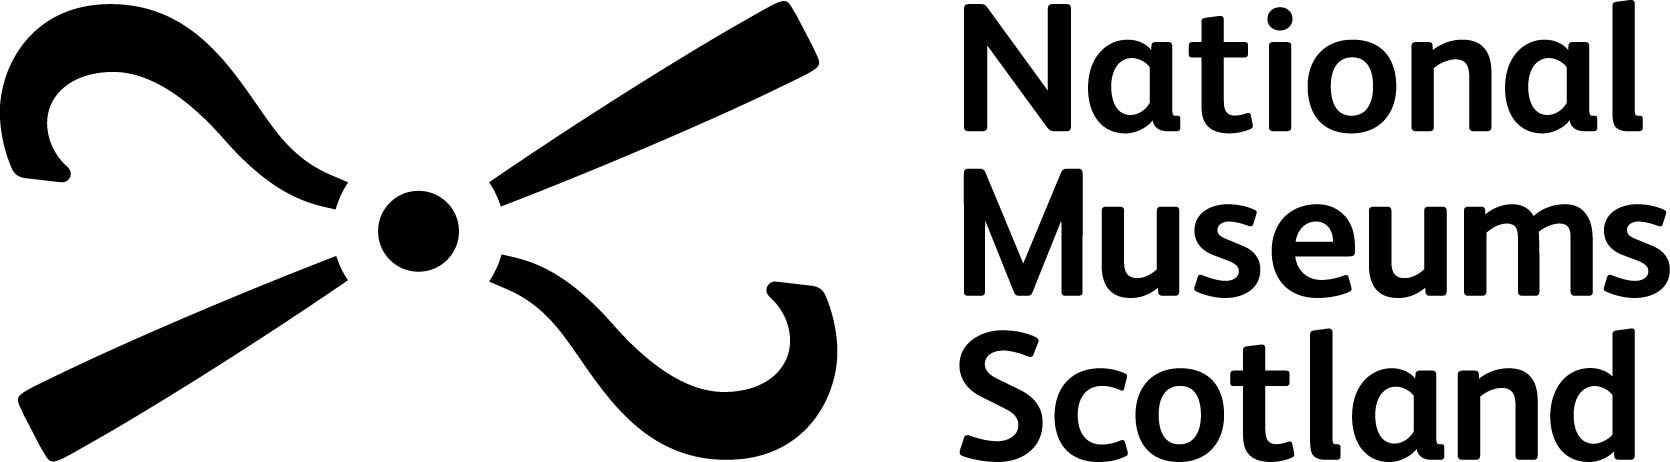 Image result for national museum of rural life scotland logo